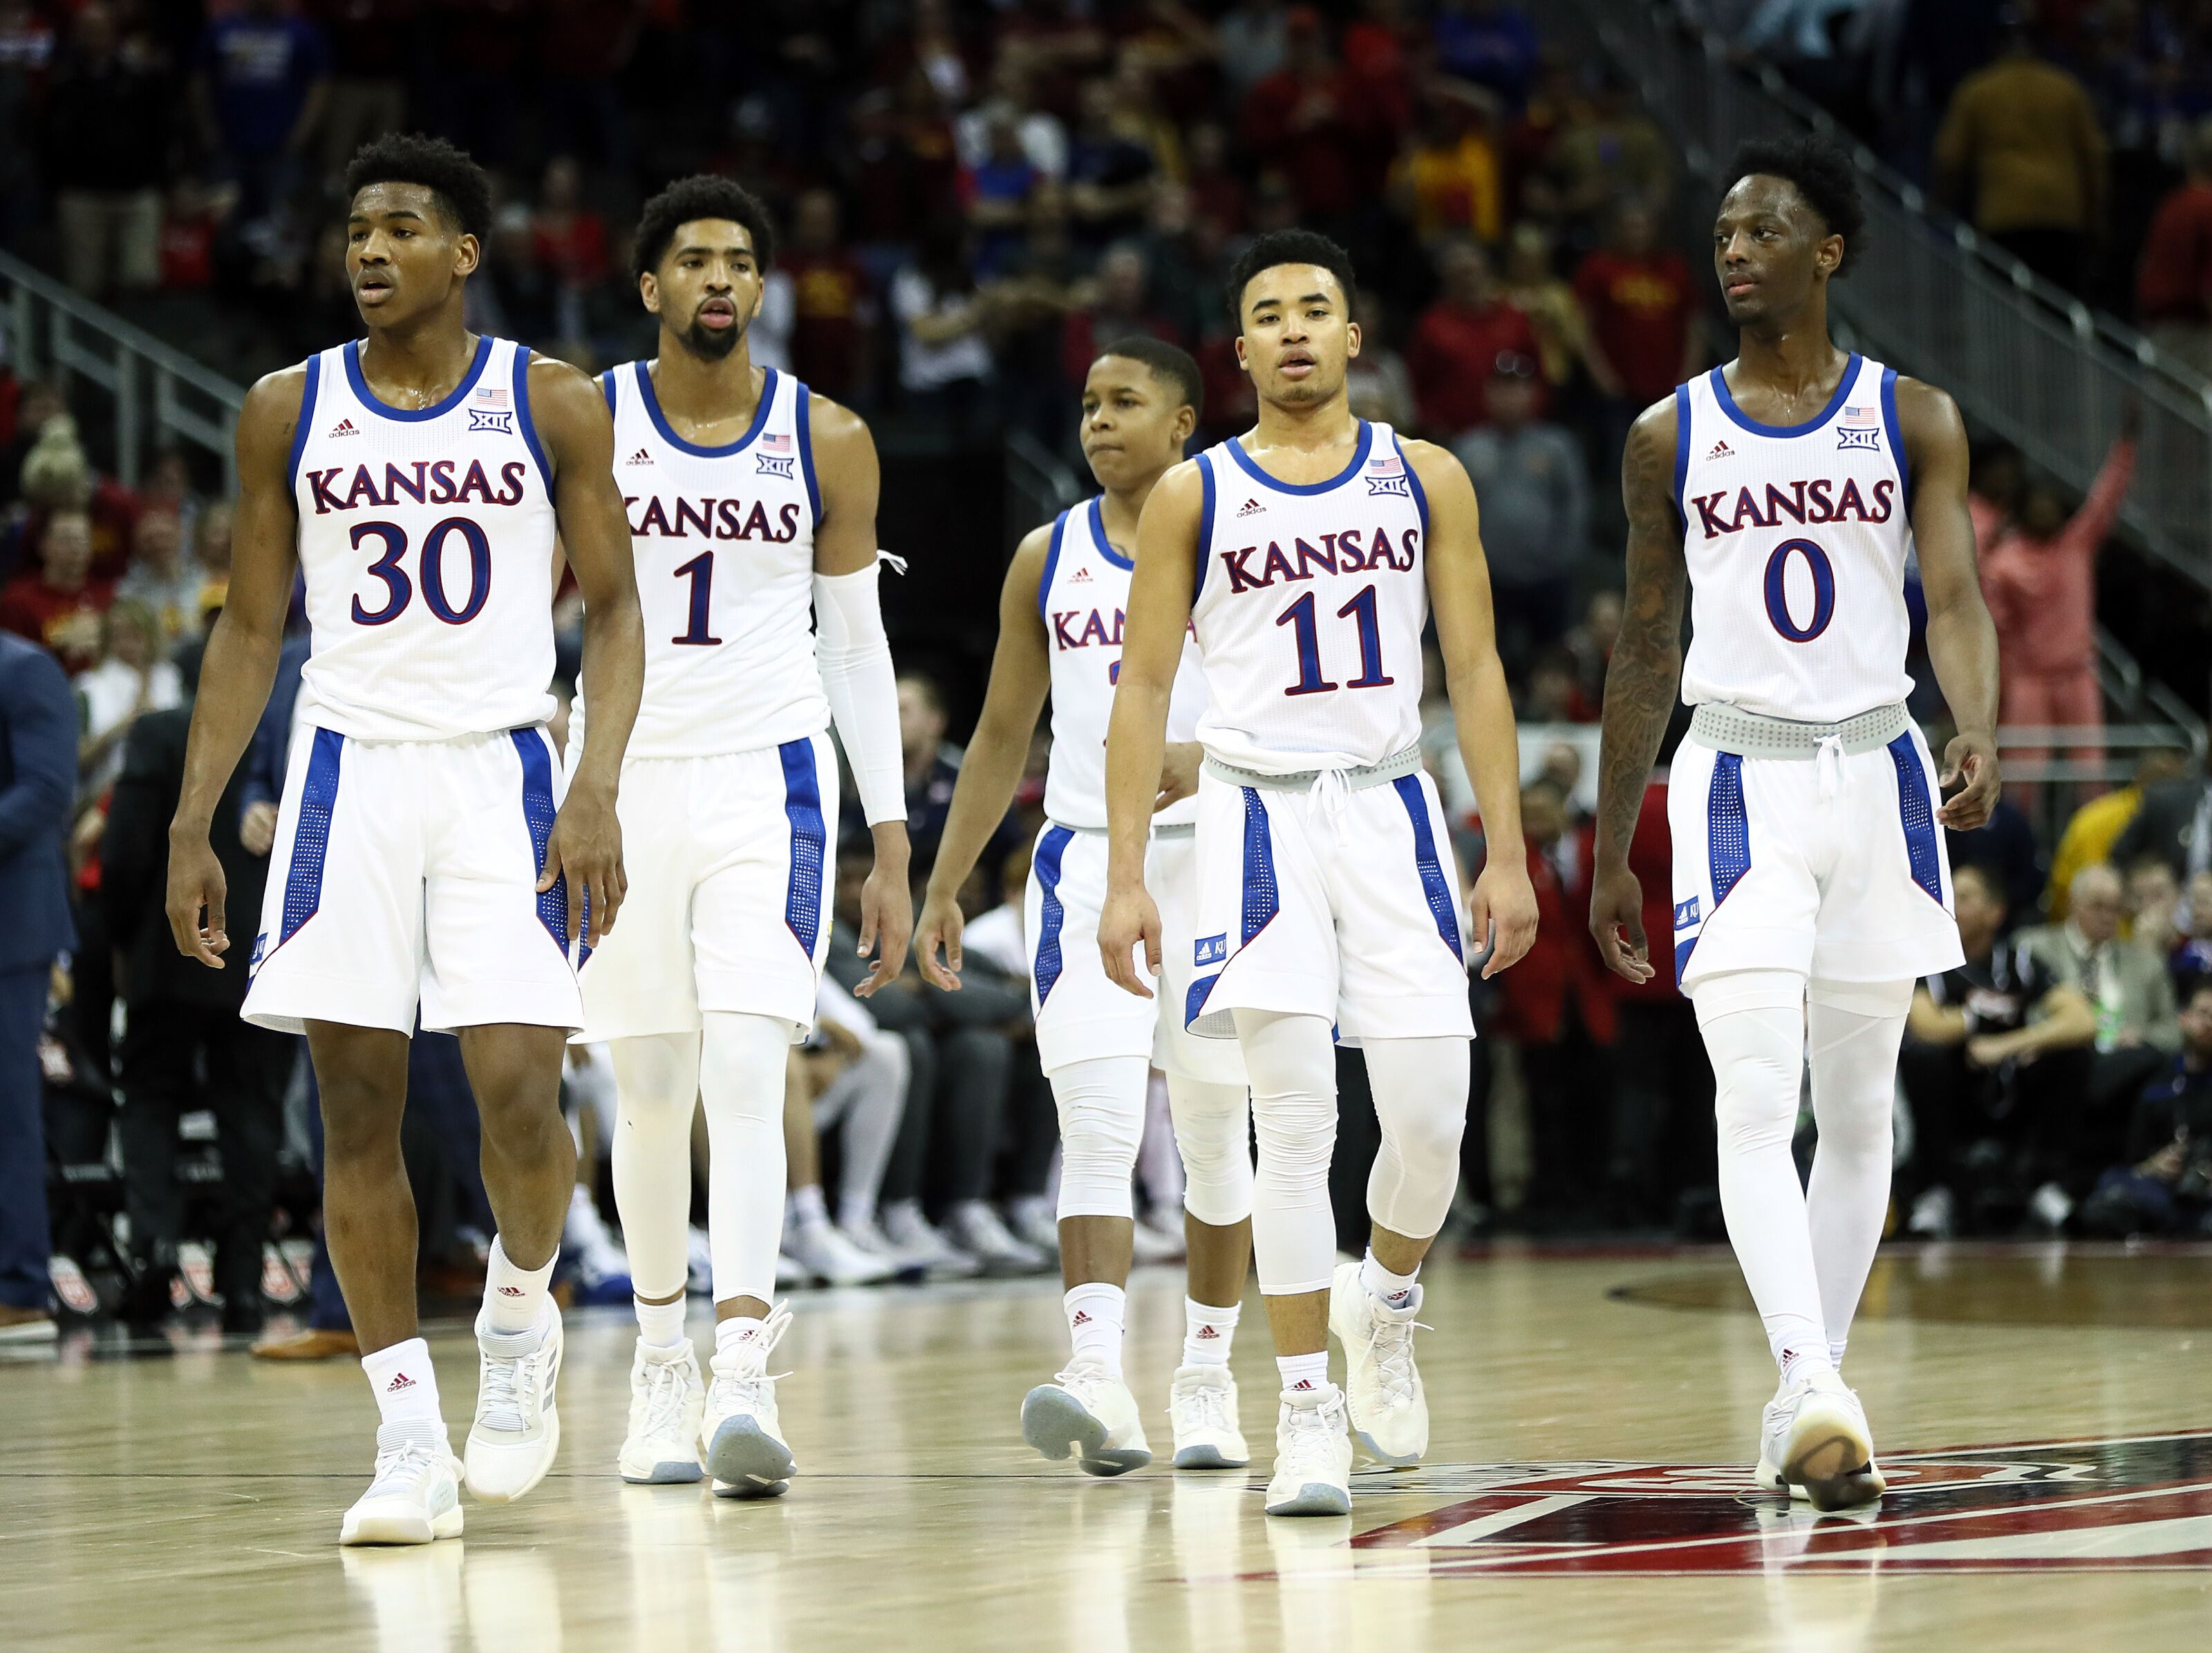 Kansas Basketball: Jayhawks take hit after losing out on Matthew Hurt